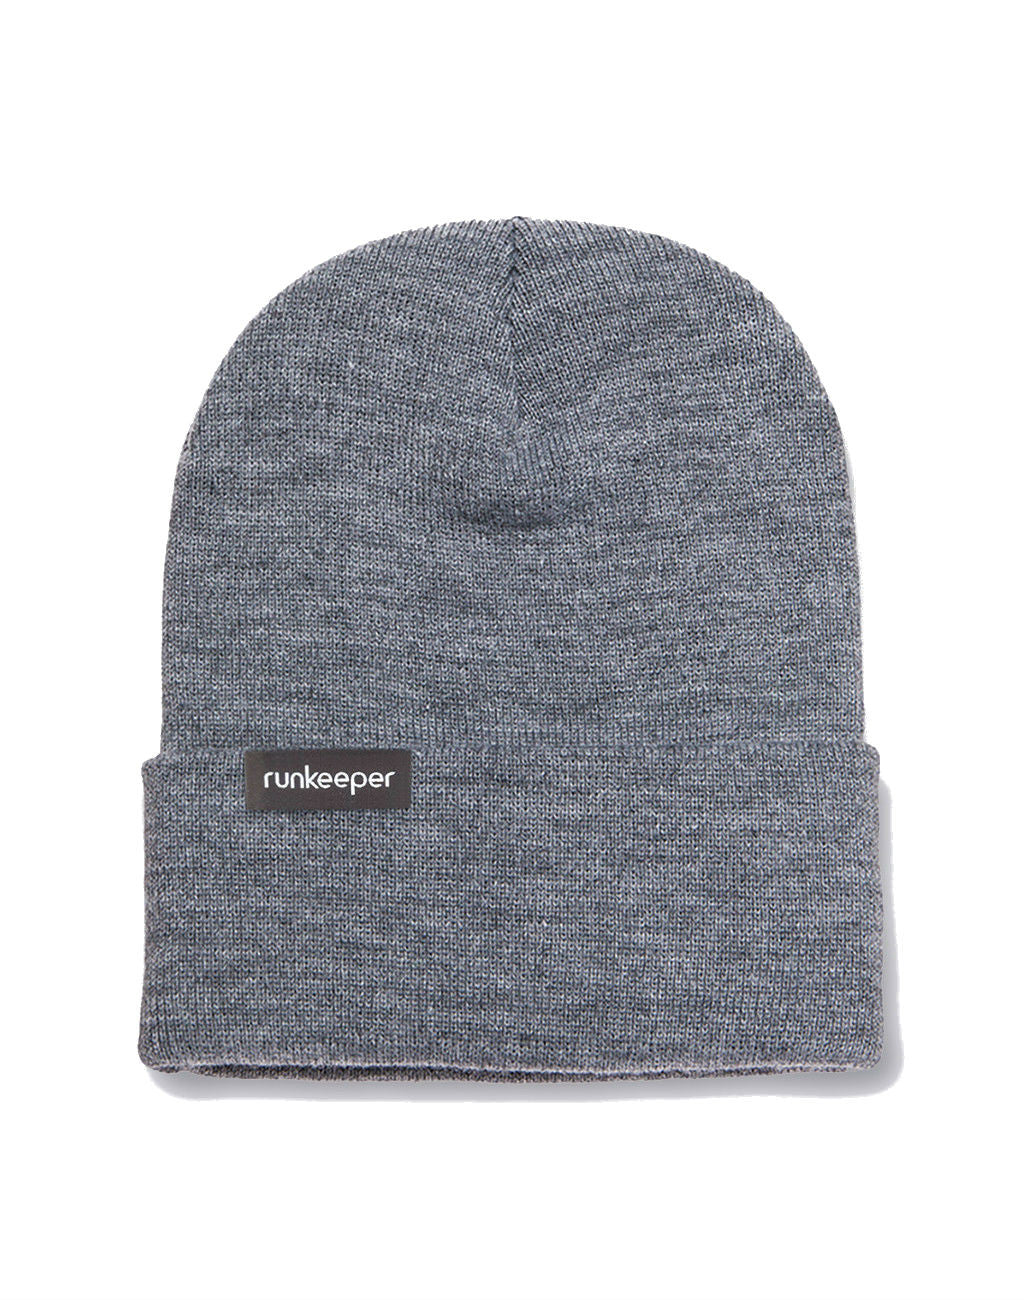 Runkeeper Unisex Knit Hat